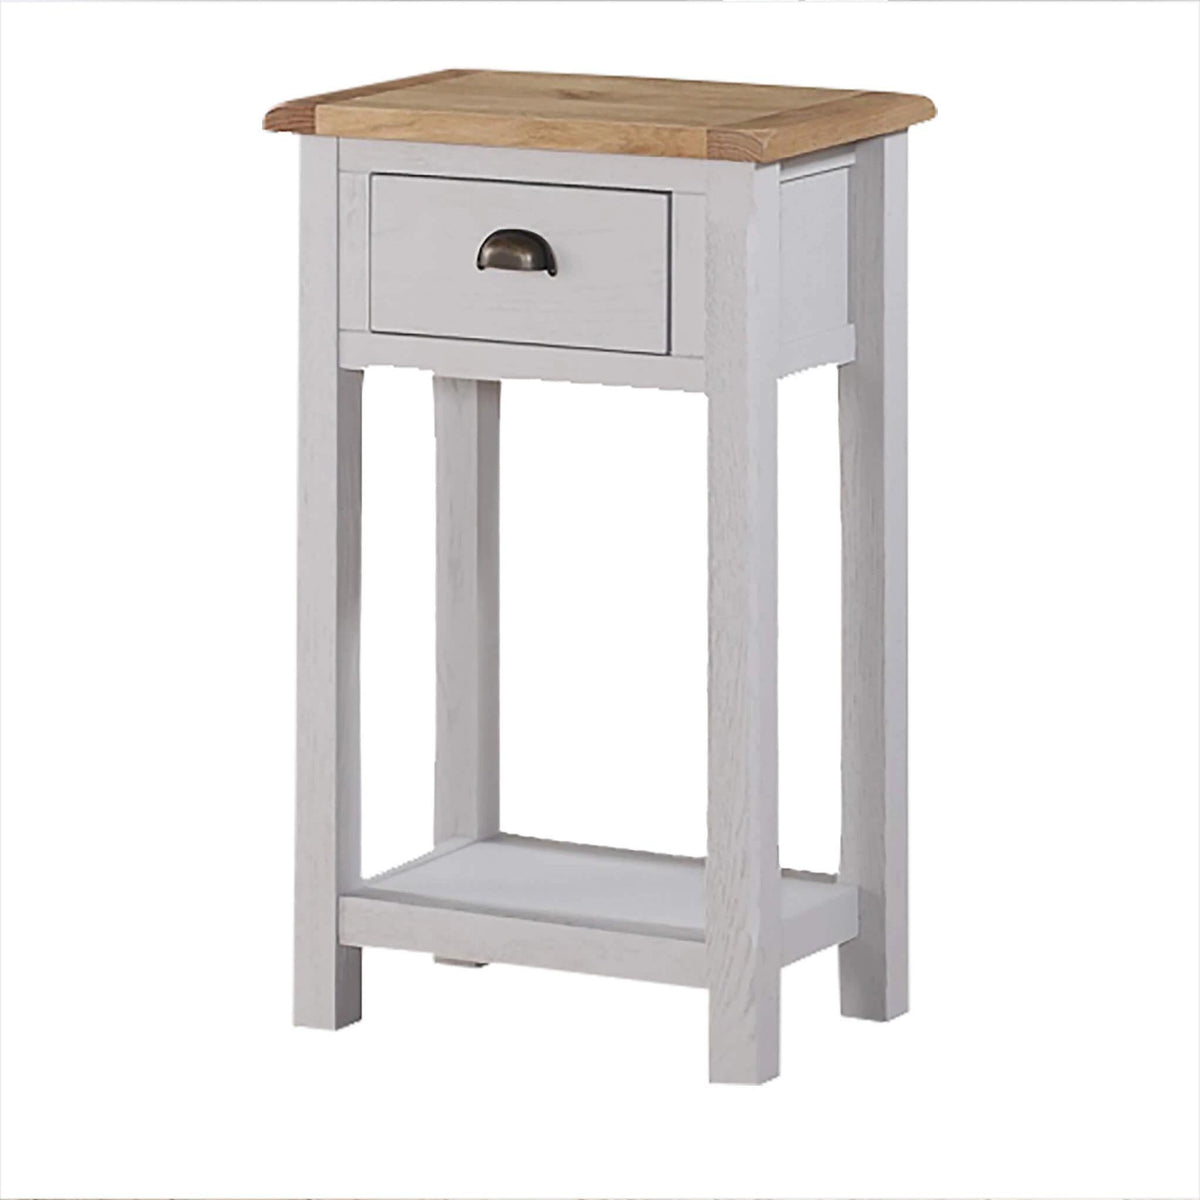 Kilmore Painted Hall Table with 1 Drawer by Roseland Furniture